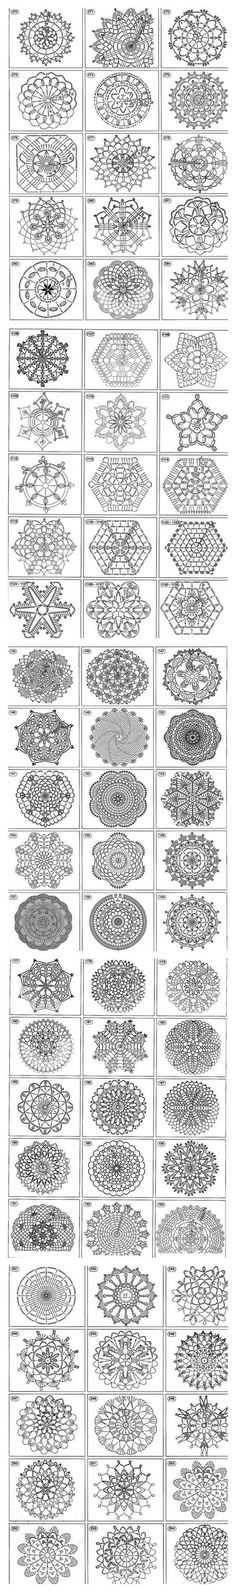 Over 1400 free crochet motif, afghan squares, coasters, snowflakes, doilies, triangles stitch chart diagram patterns. Great for baby blankets, afghans, table cloths, towel edging, Christmas. ornaments etc.: